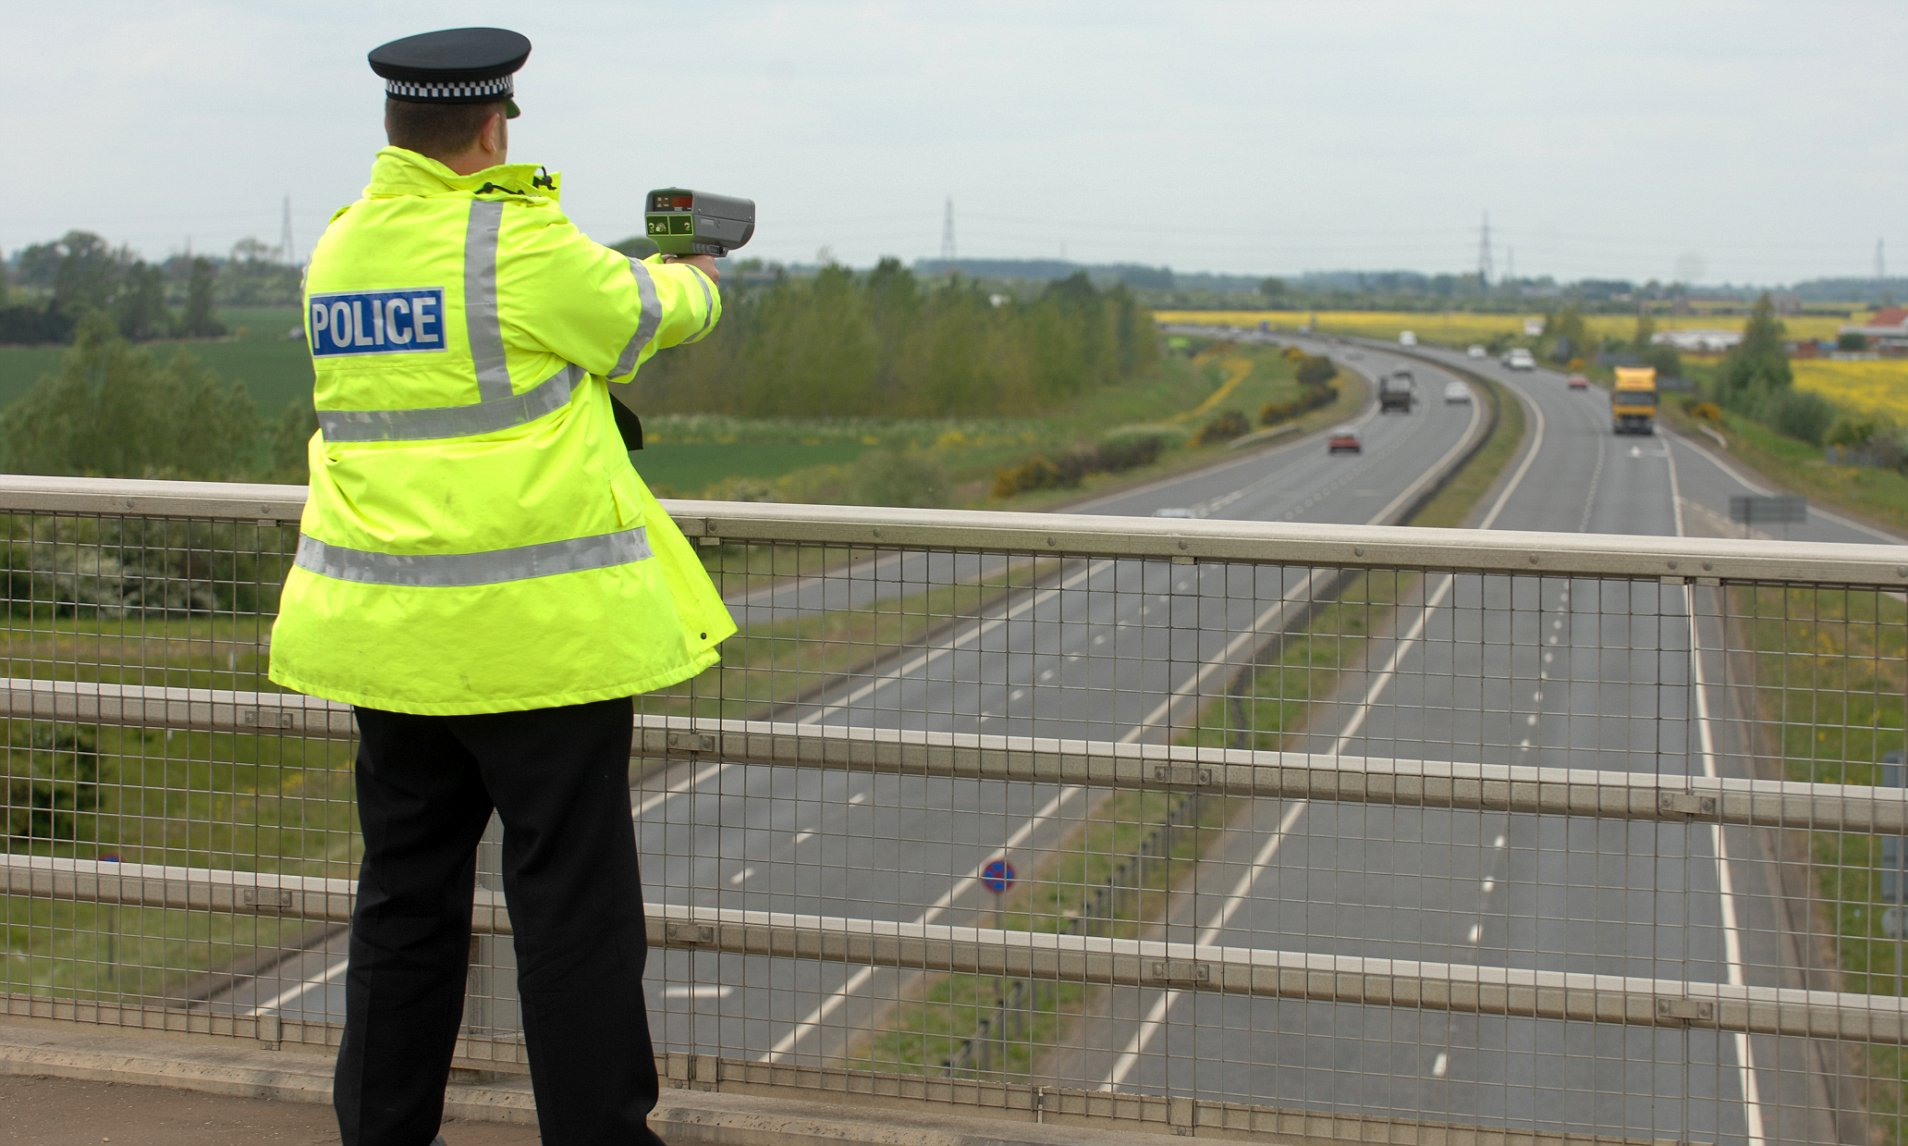 RAC questions plans to penalise 1mph-over speed offences